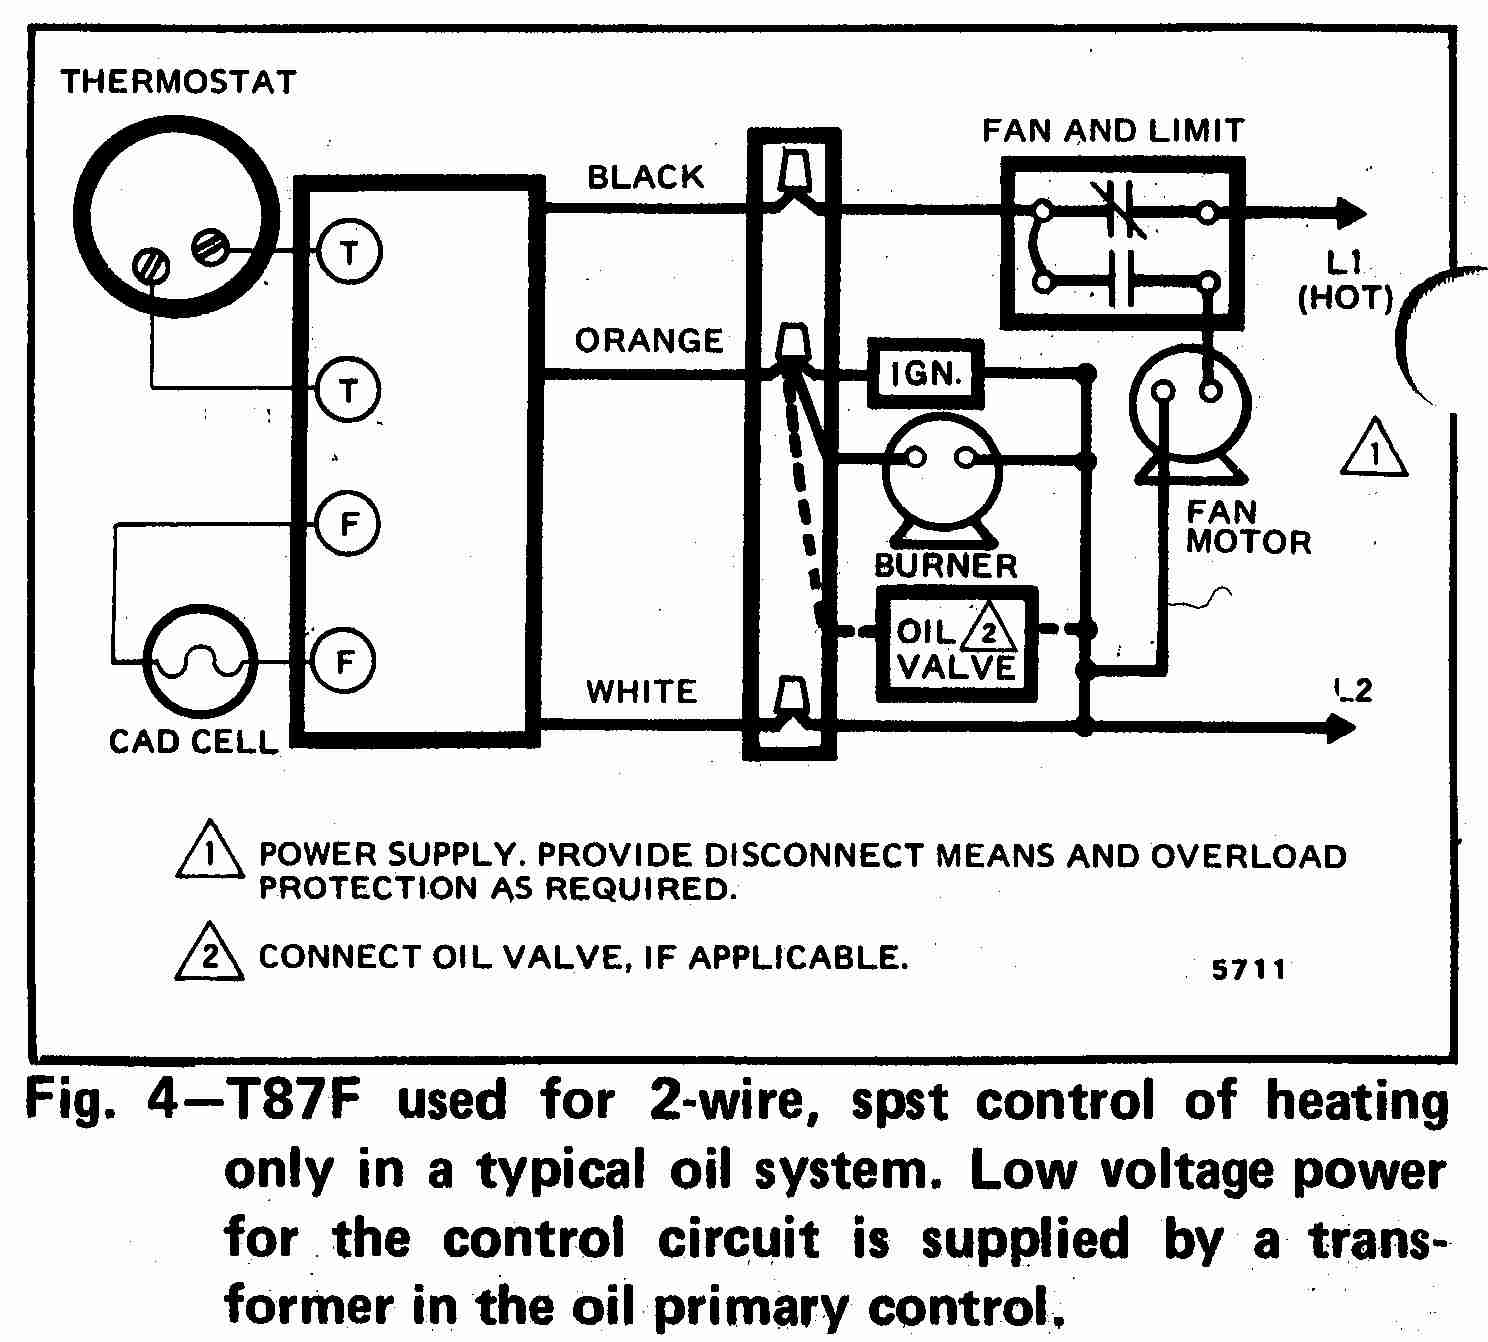 TT_T87F_0002_2W_DJF wiring diagram for thermostat heat pump thermostat wiring \u2022 free LuxPro Thermostat Manual at readyjetset.co